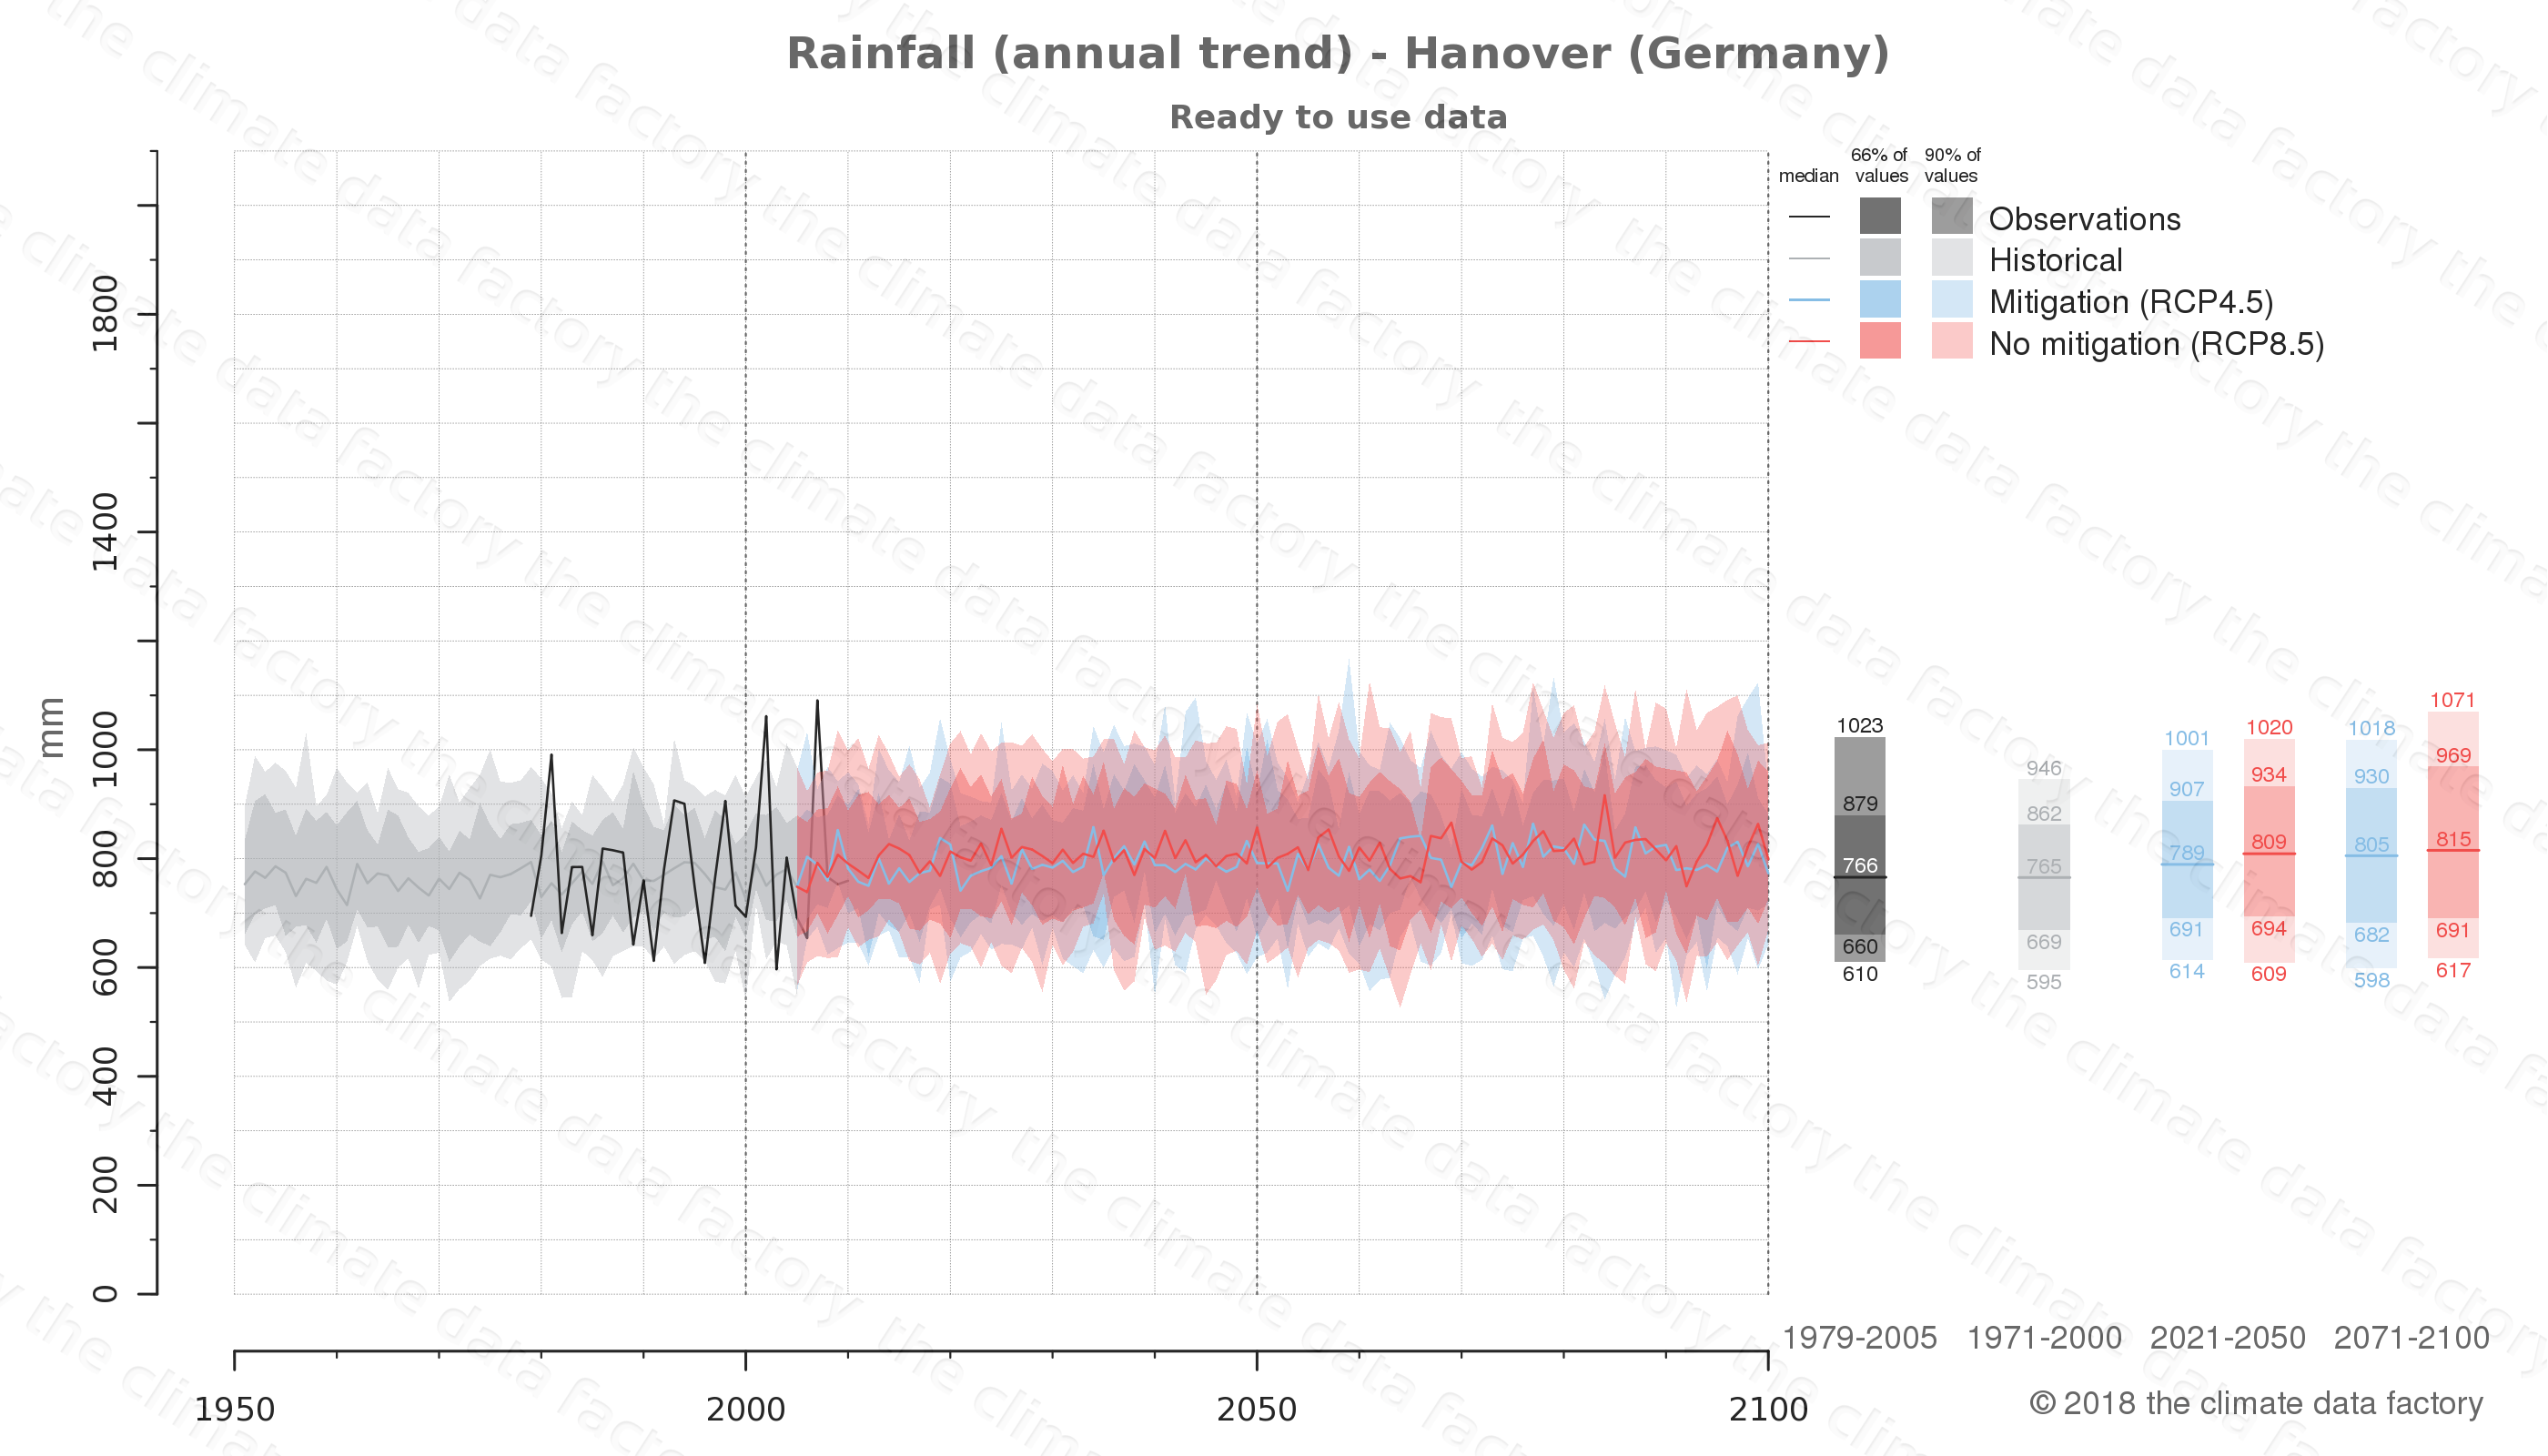 climate change data policy adaptation climate graph city data rainfall hanover germany